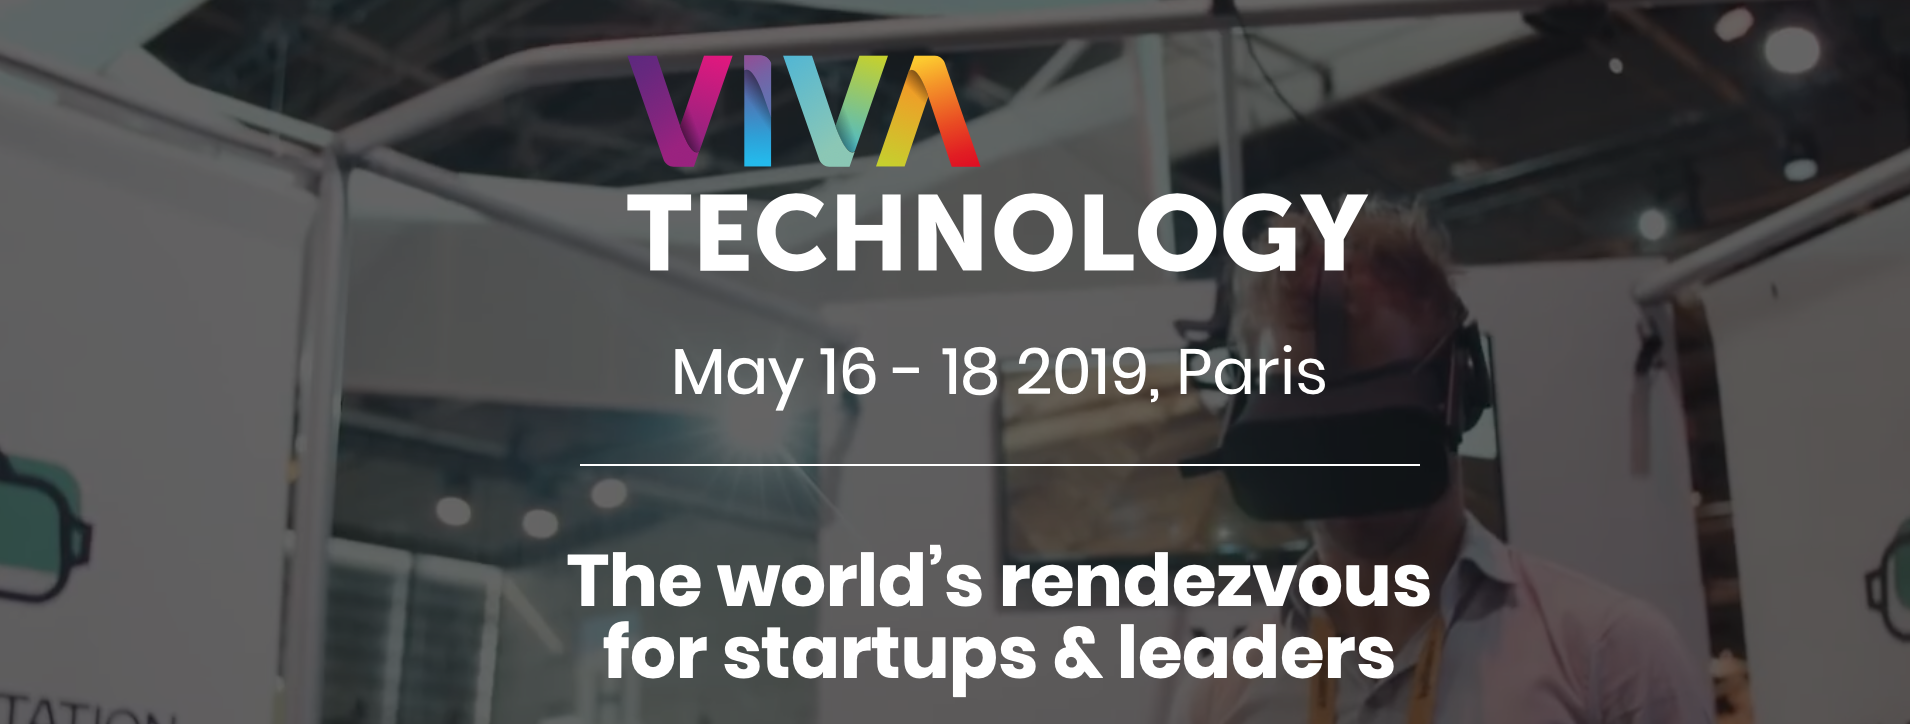 VivaTechnology du 16/05 au 18/05 à Paris